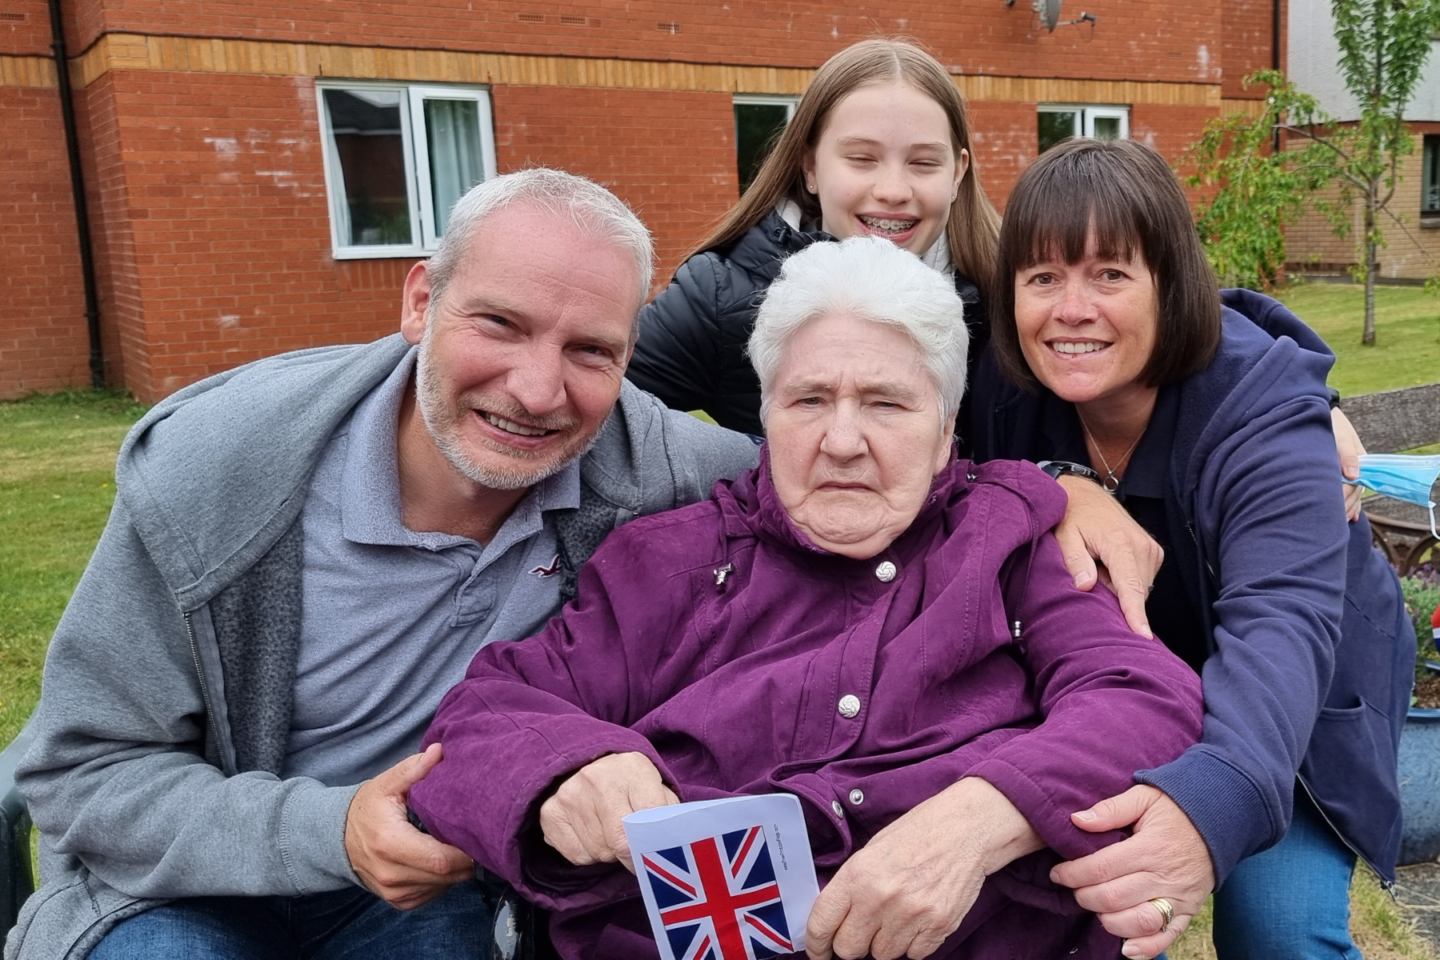 Newcarron Singer Inspires Magical Moment Between Resident and Her Son